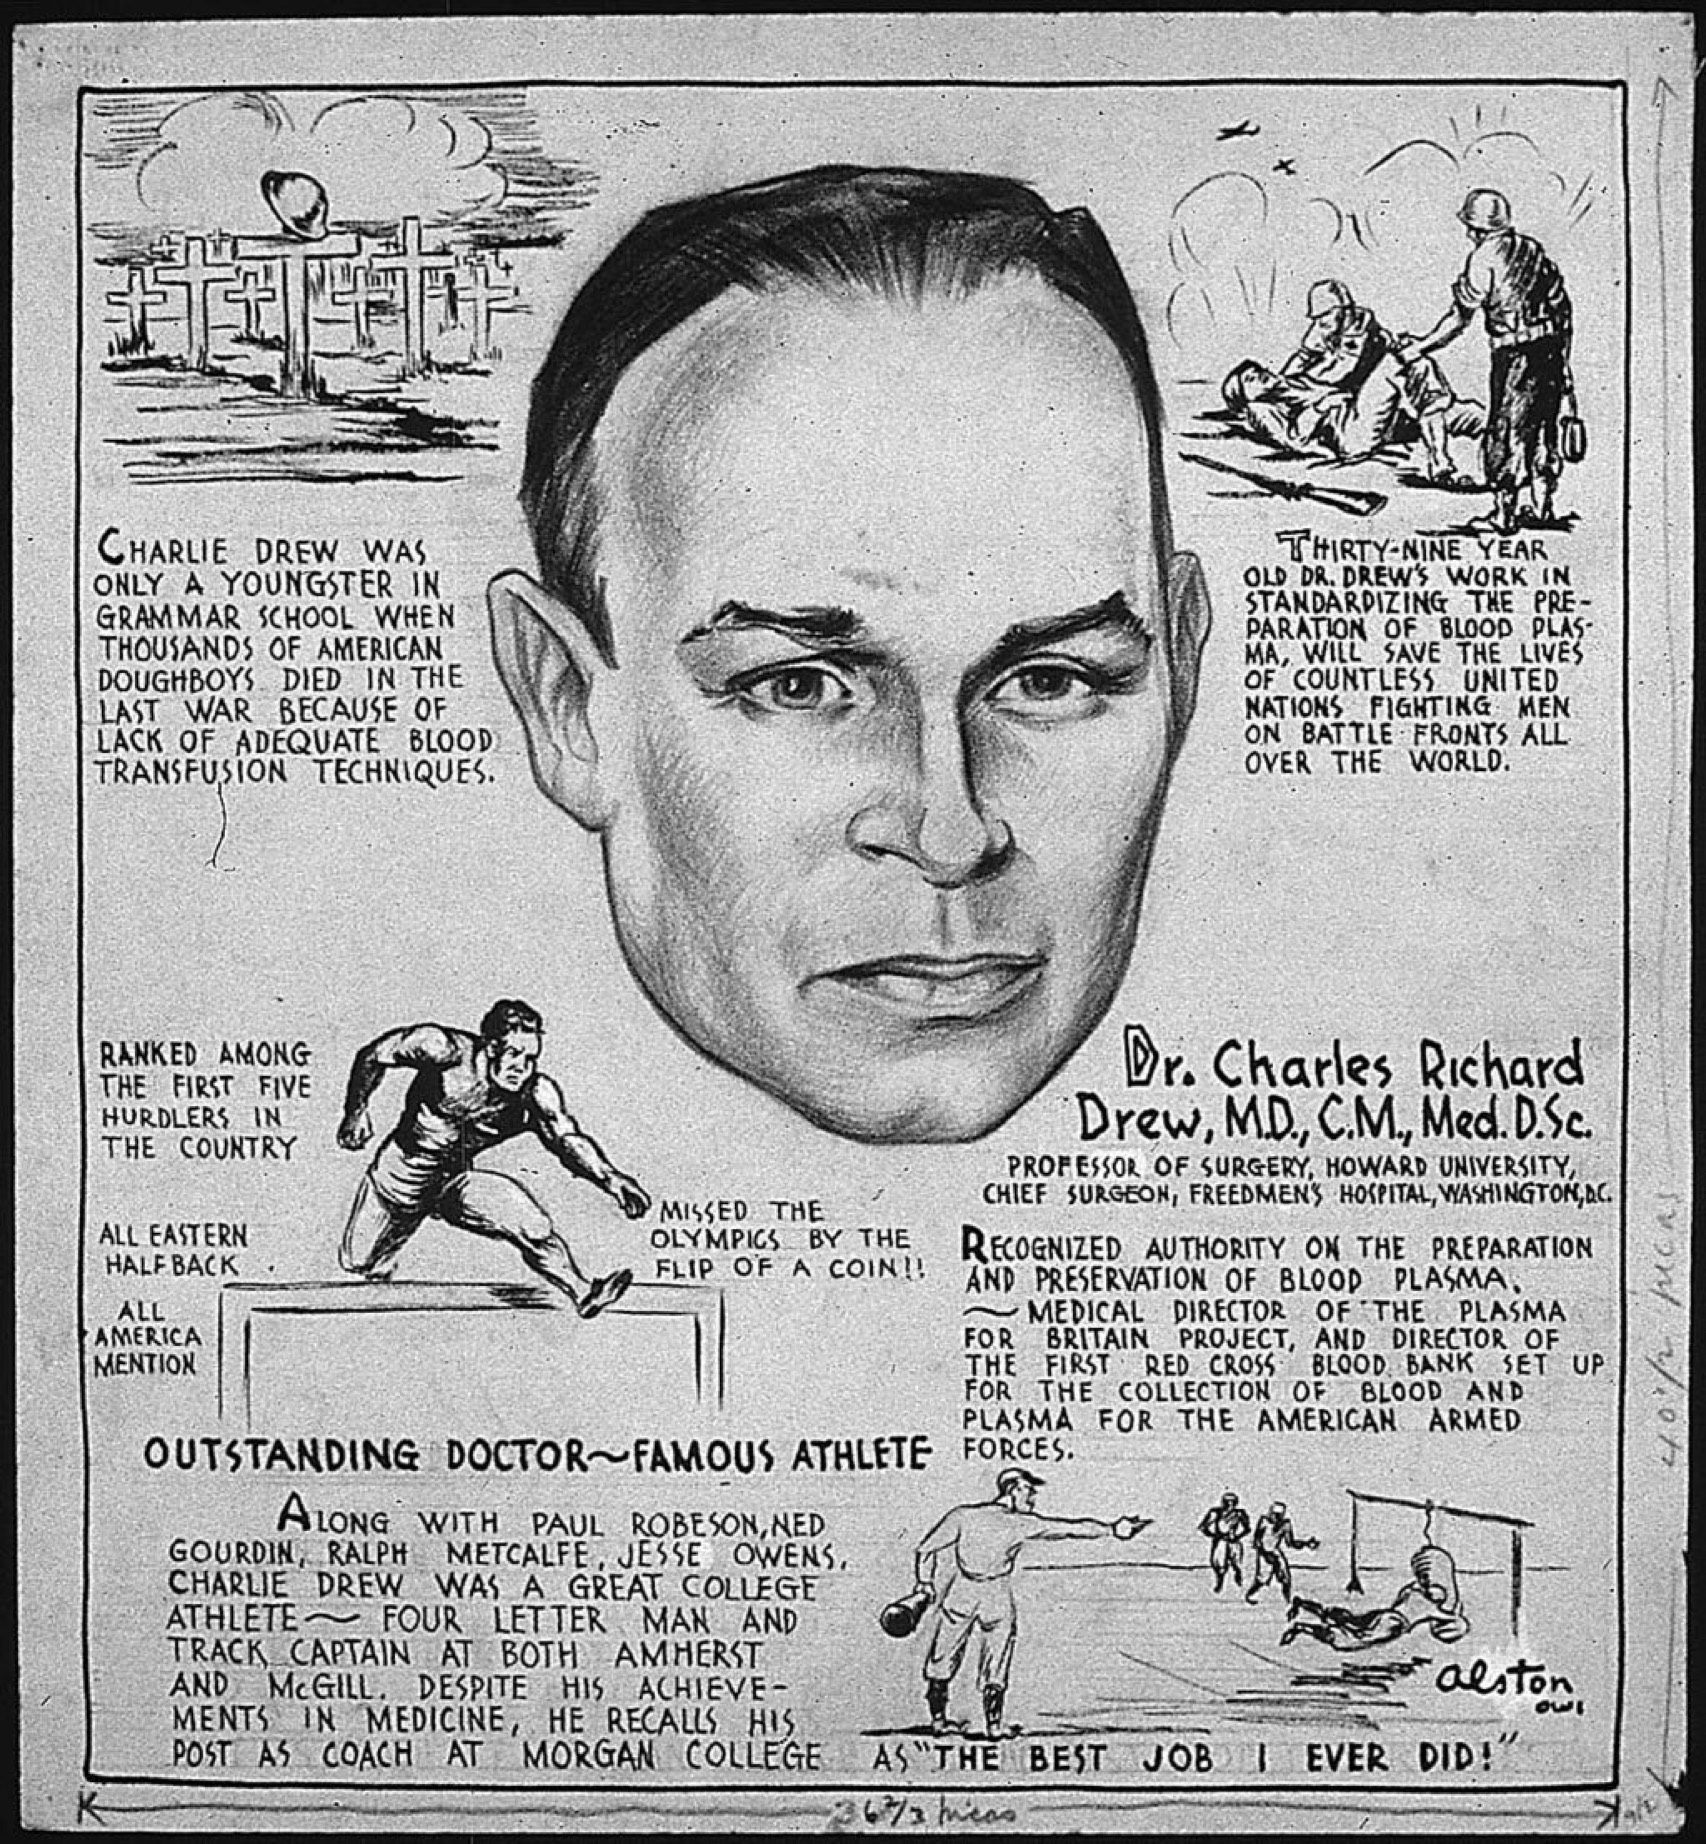 dr charles drew Dr charles drew blood bank inventor it's impossible to determine how many hundreds of thousands of people would have lost their lives without the contributions of african-american inventor dr charles drew.